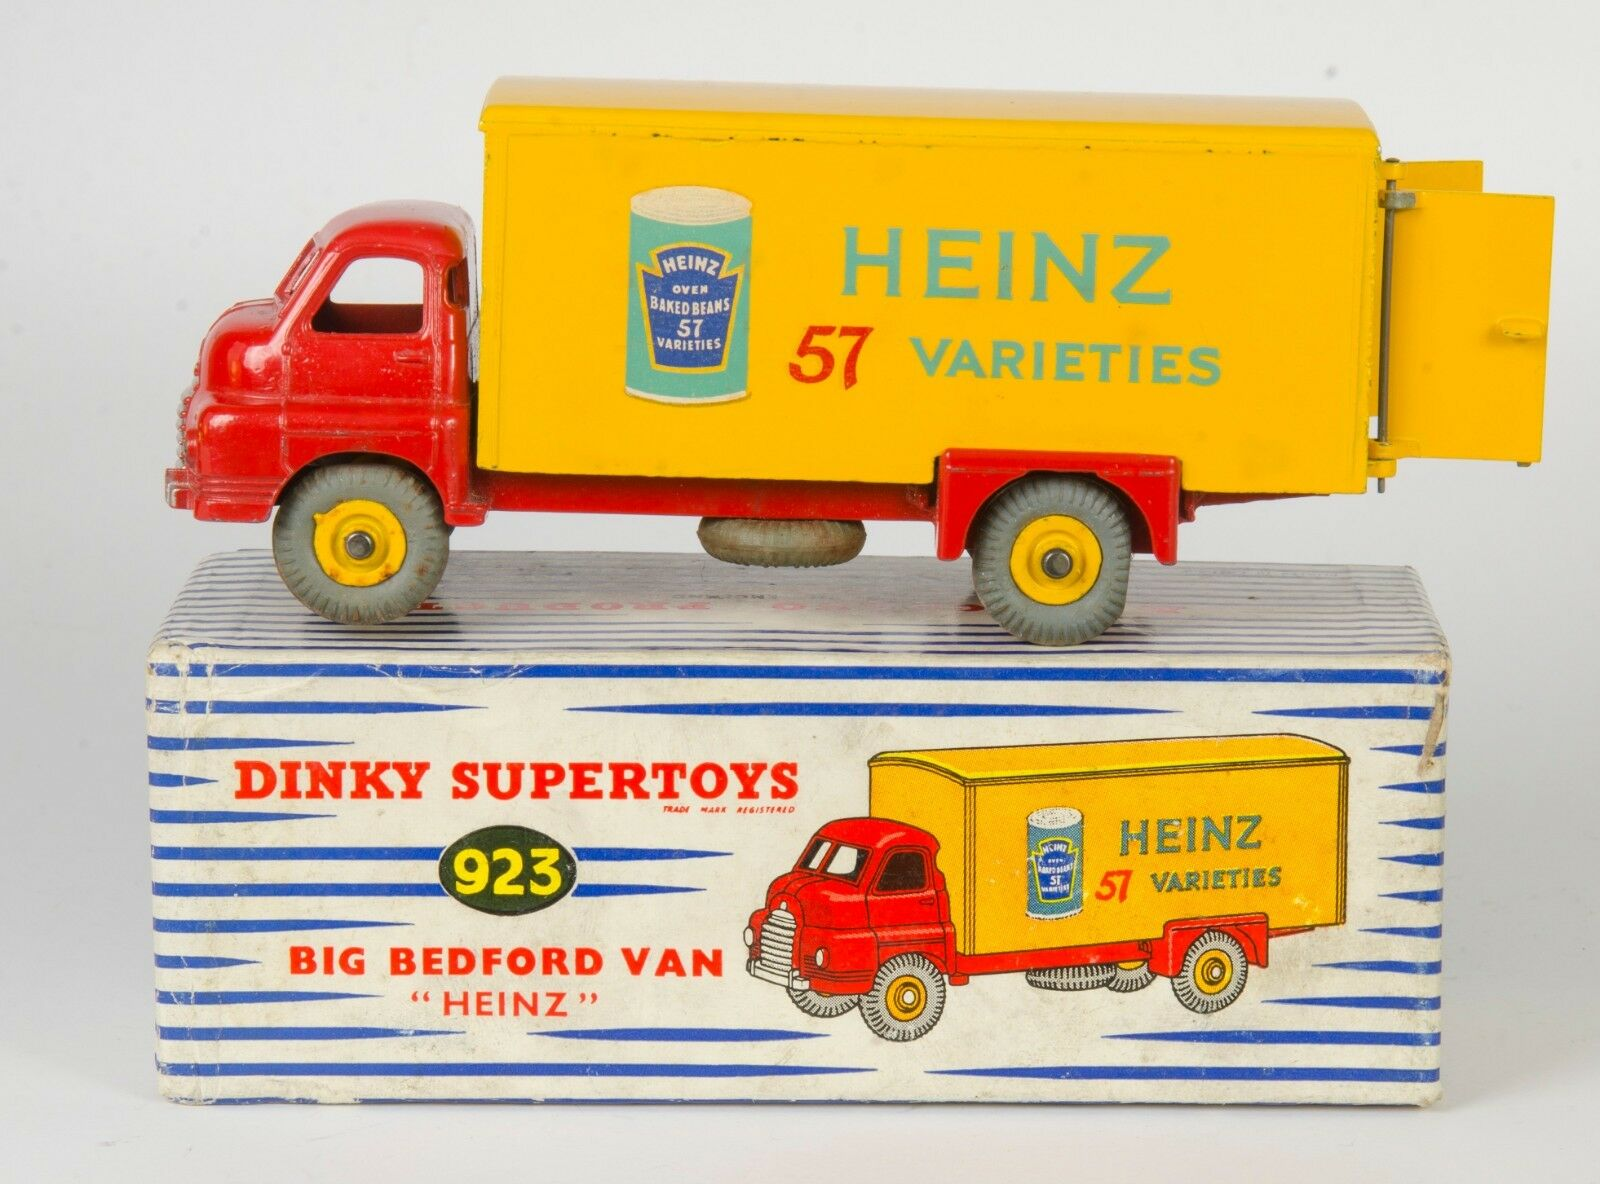 Dinky Supertoys 923 Big Bedford Van 'HEINZ'. Near-Mint Boxed. Original 1950's